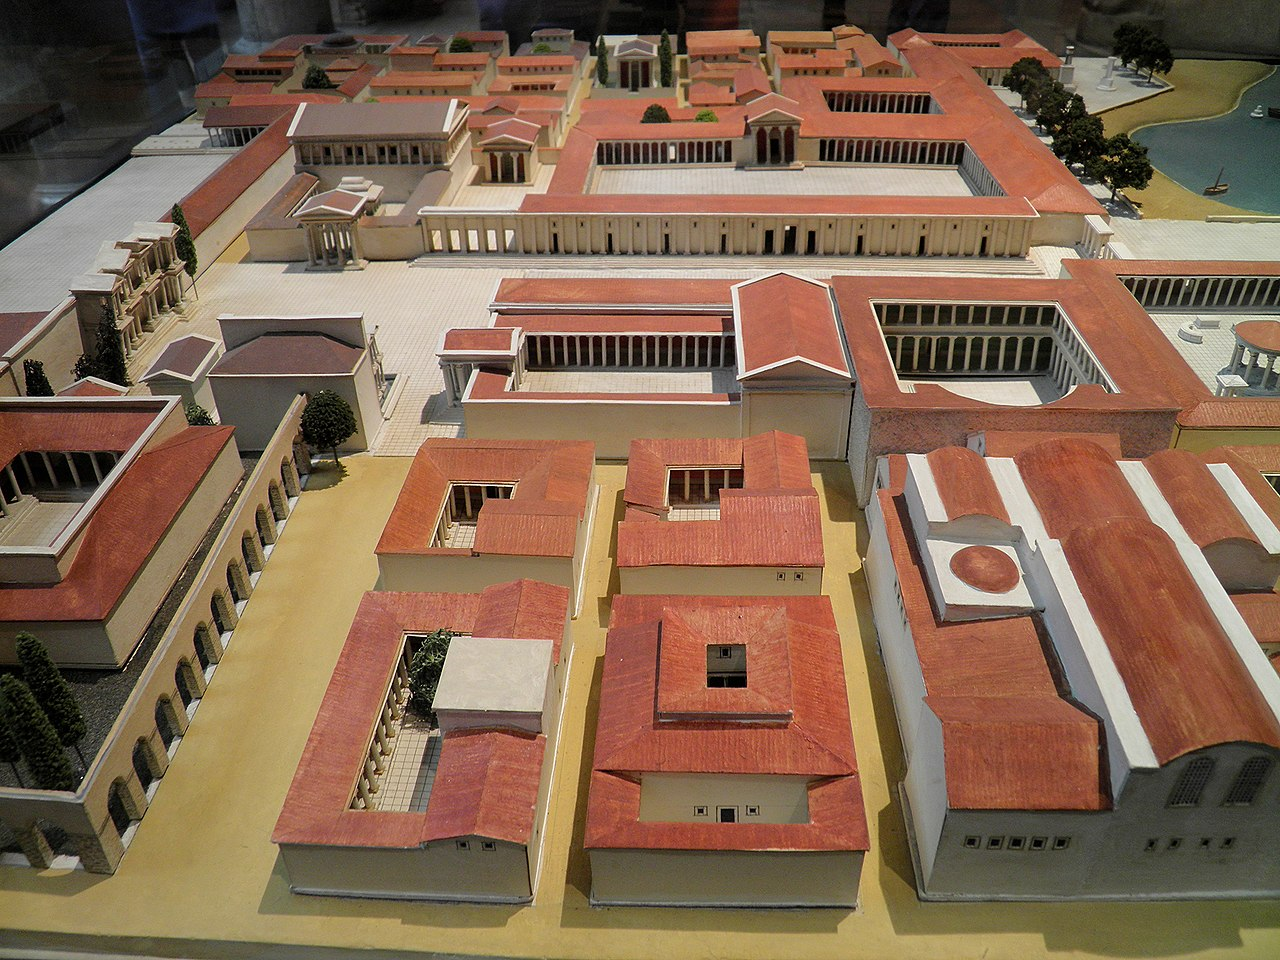 File:Maquette of Miletus during the Roman Imperial Reign ...